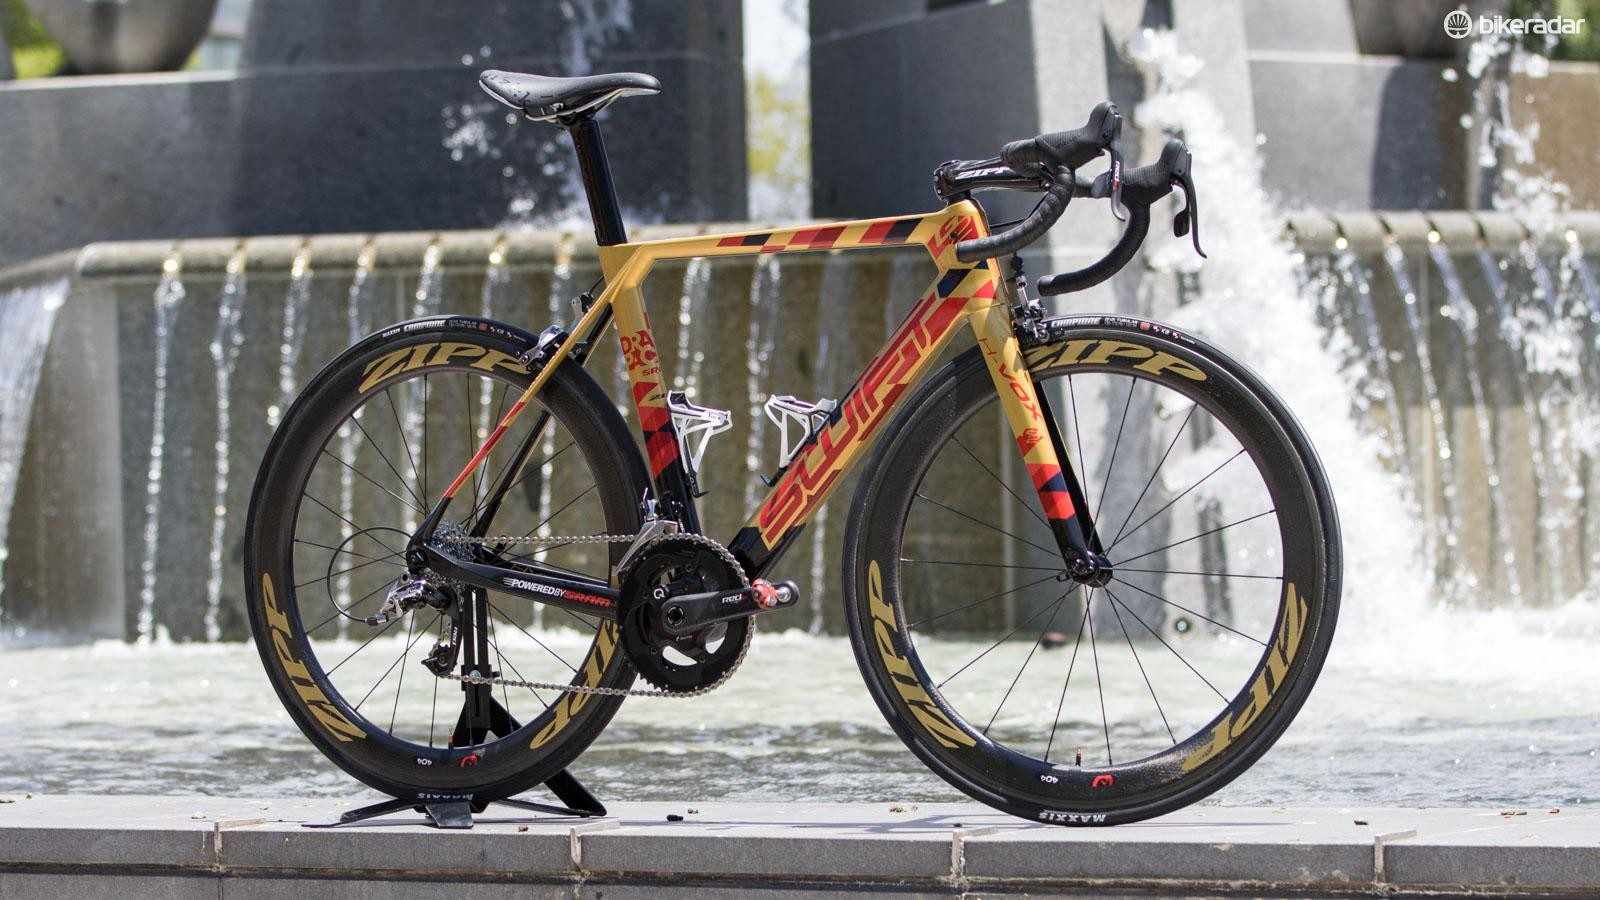 Beneath the special paint, this pro bike hides a brand new SwiftCarbon aero road frame - the HyperVox